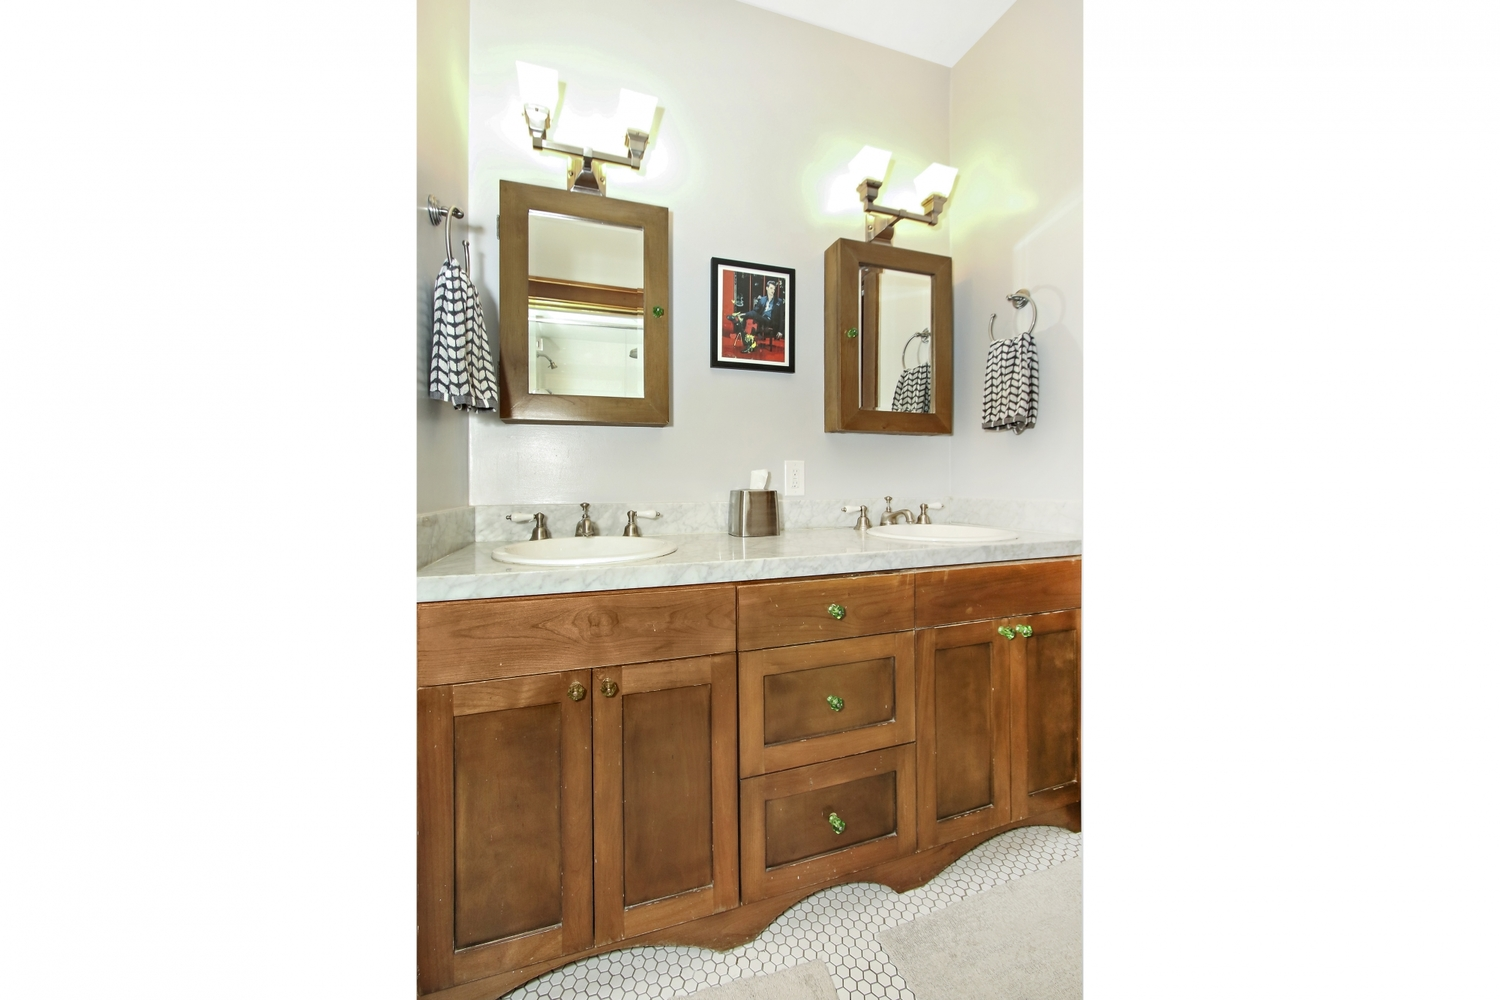 Period style vanity and medicine cabinets